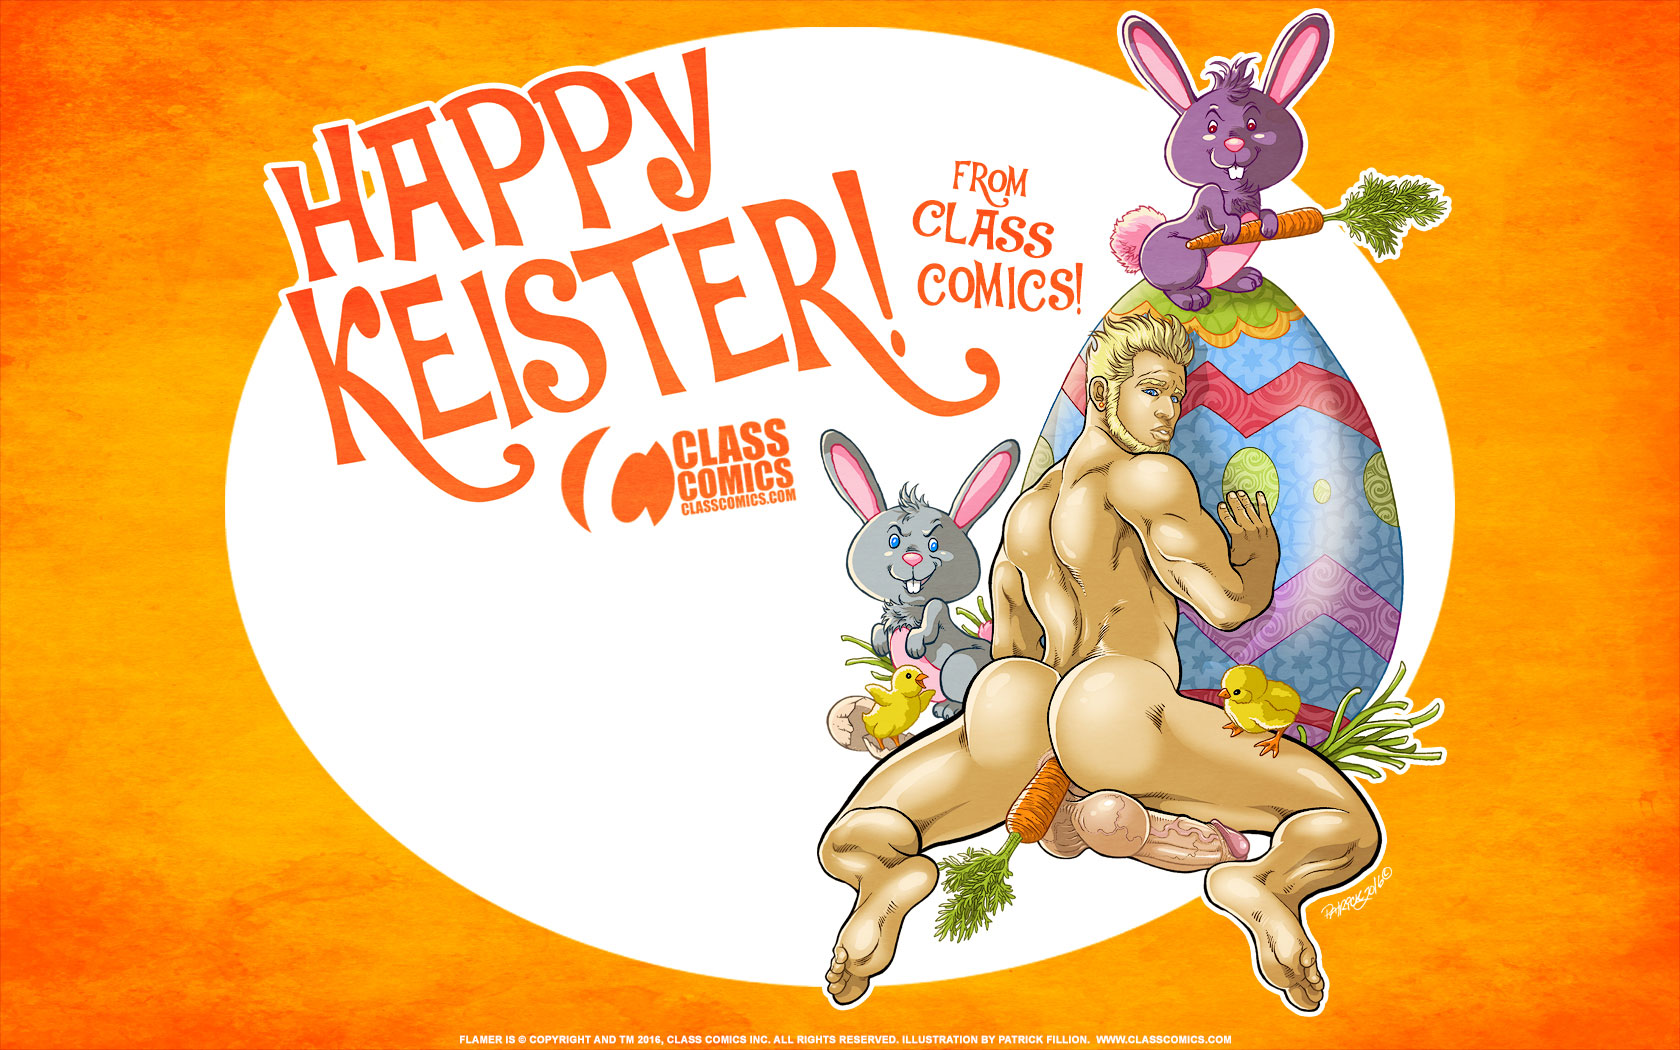 happy keister 1680 x 1050